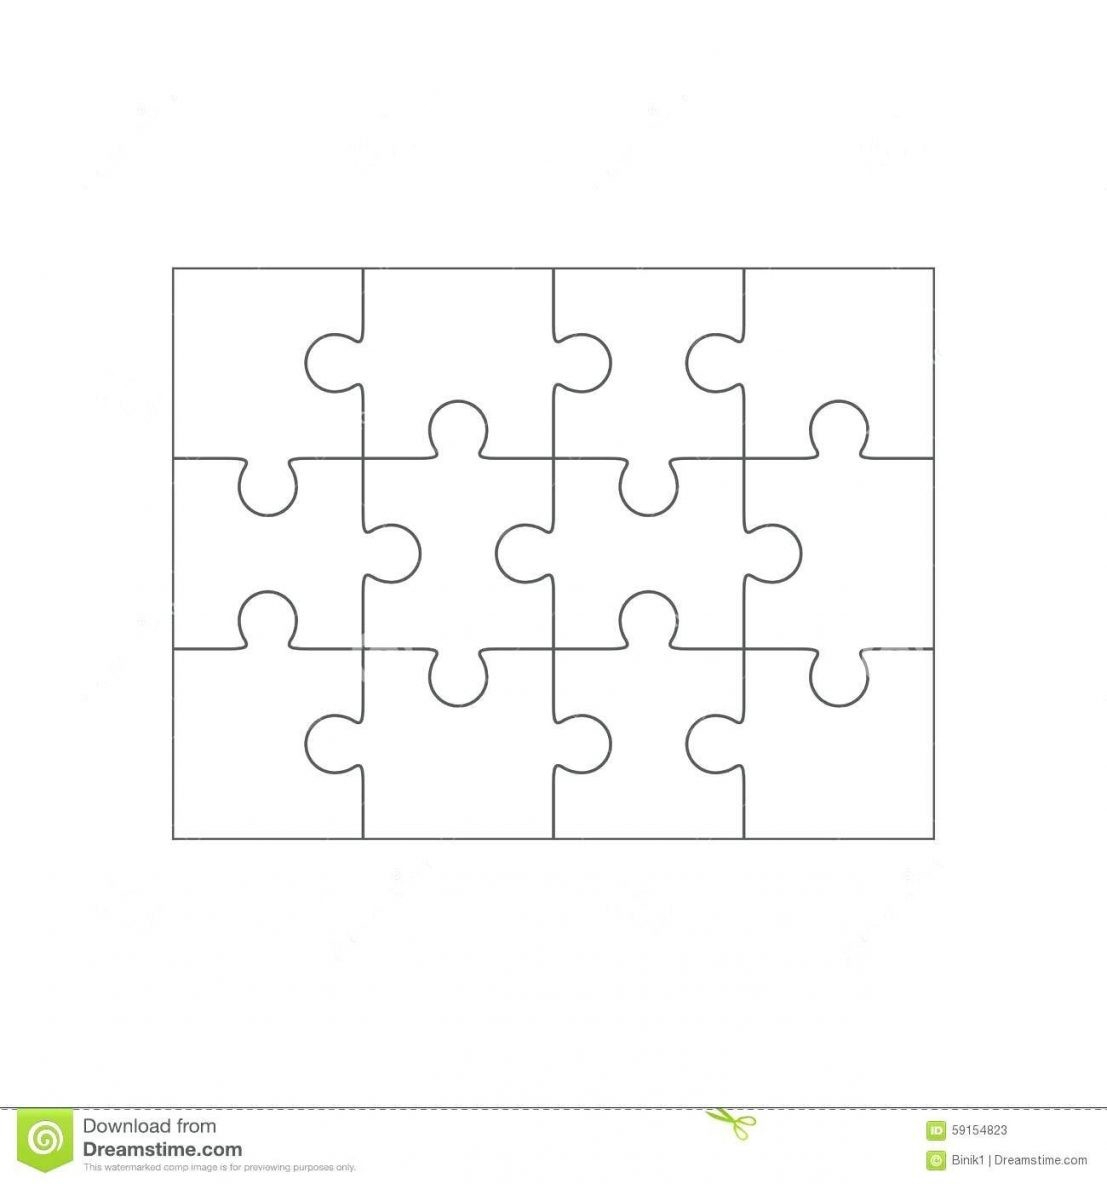 Crossword Puzzle Maker And Word Search Crosswords Printable Jigsaw - Printable Jigsaw Puzzle Maker Software